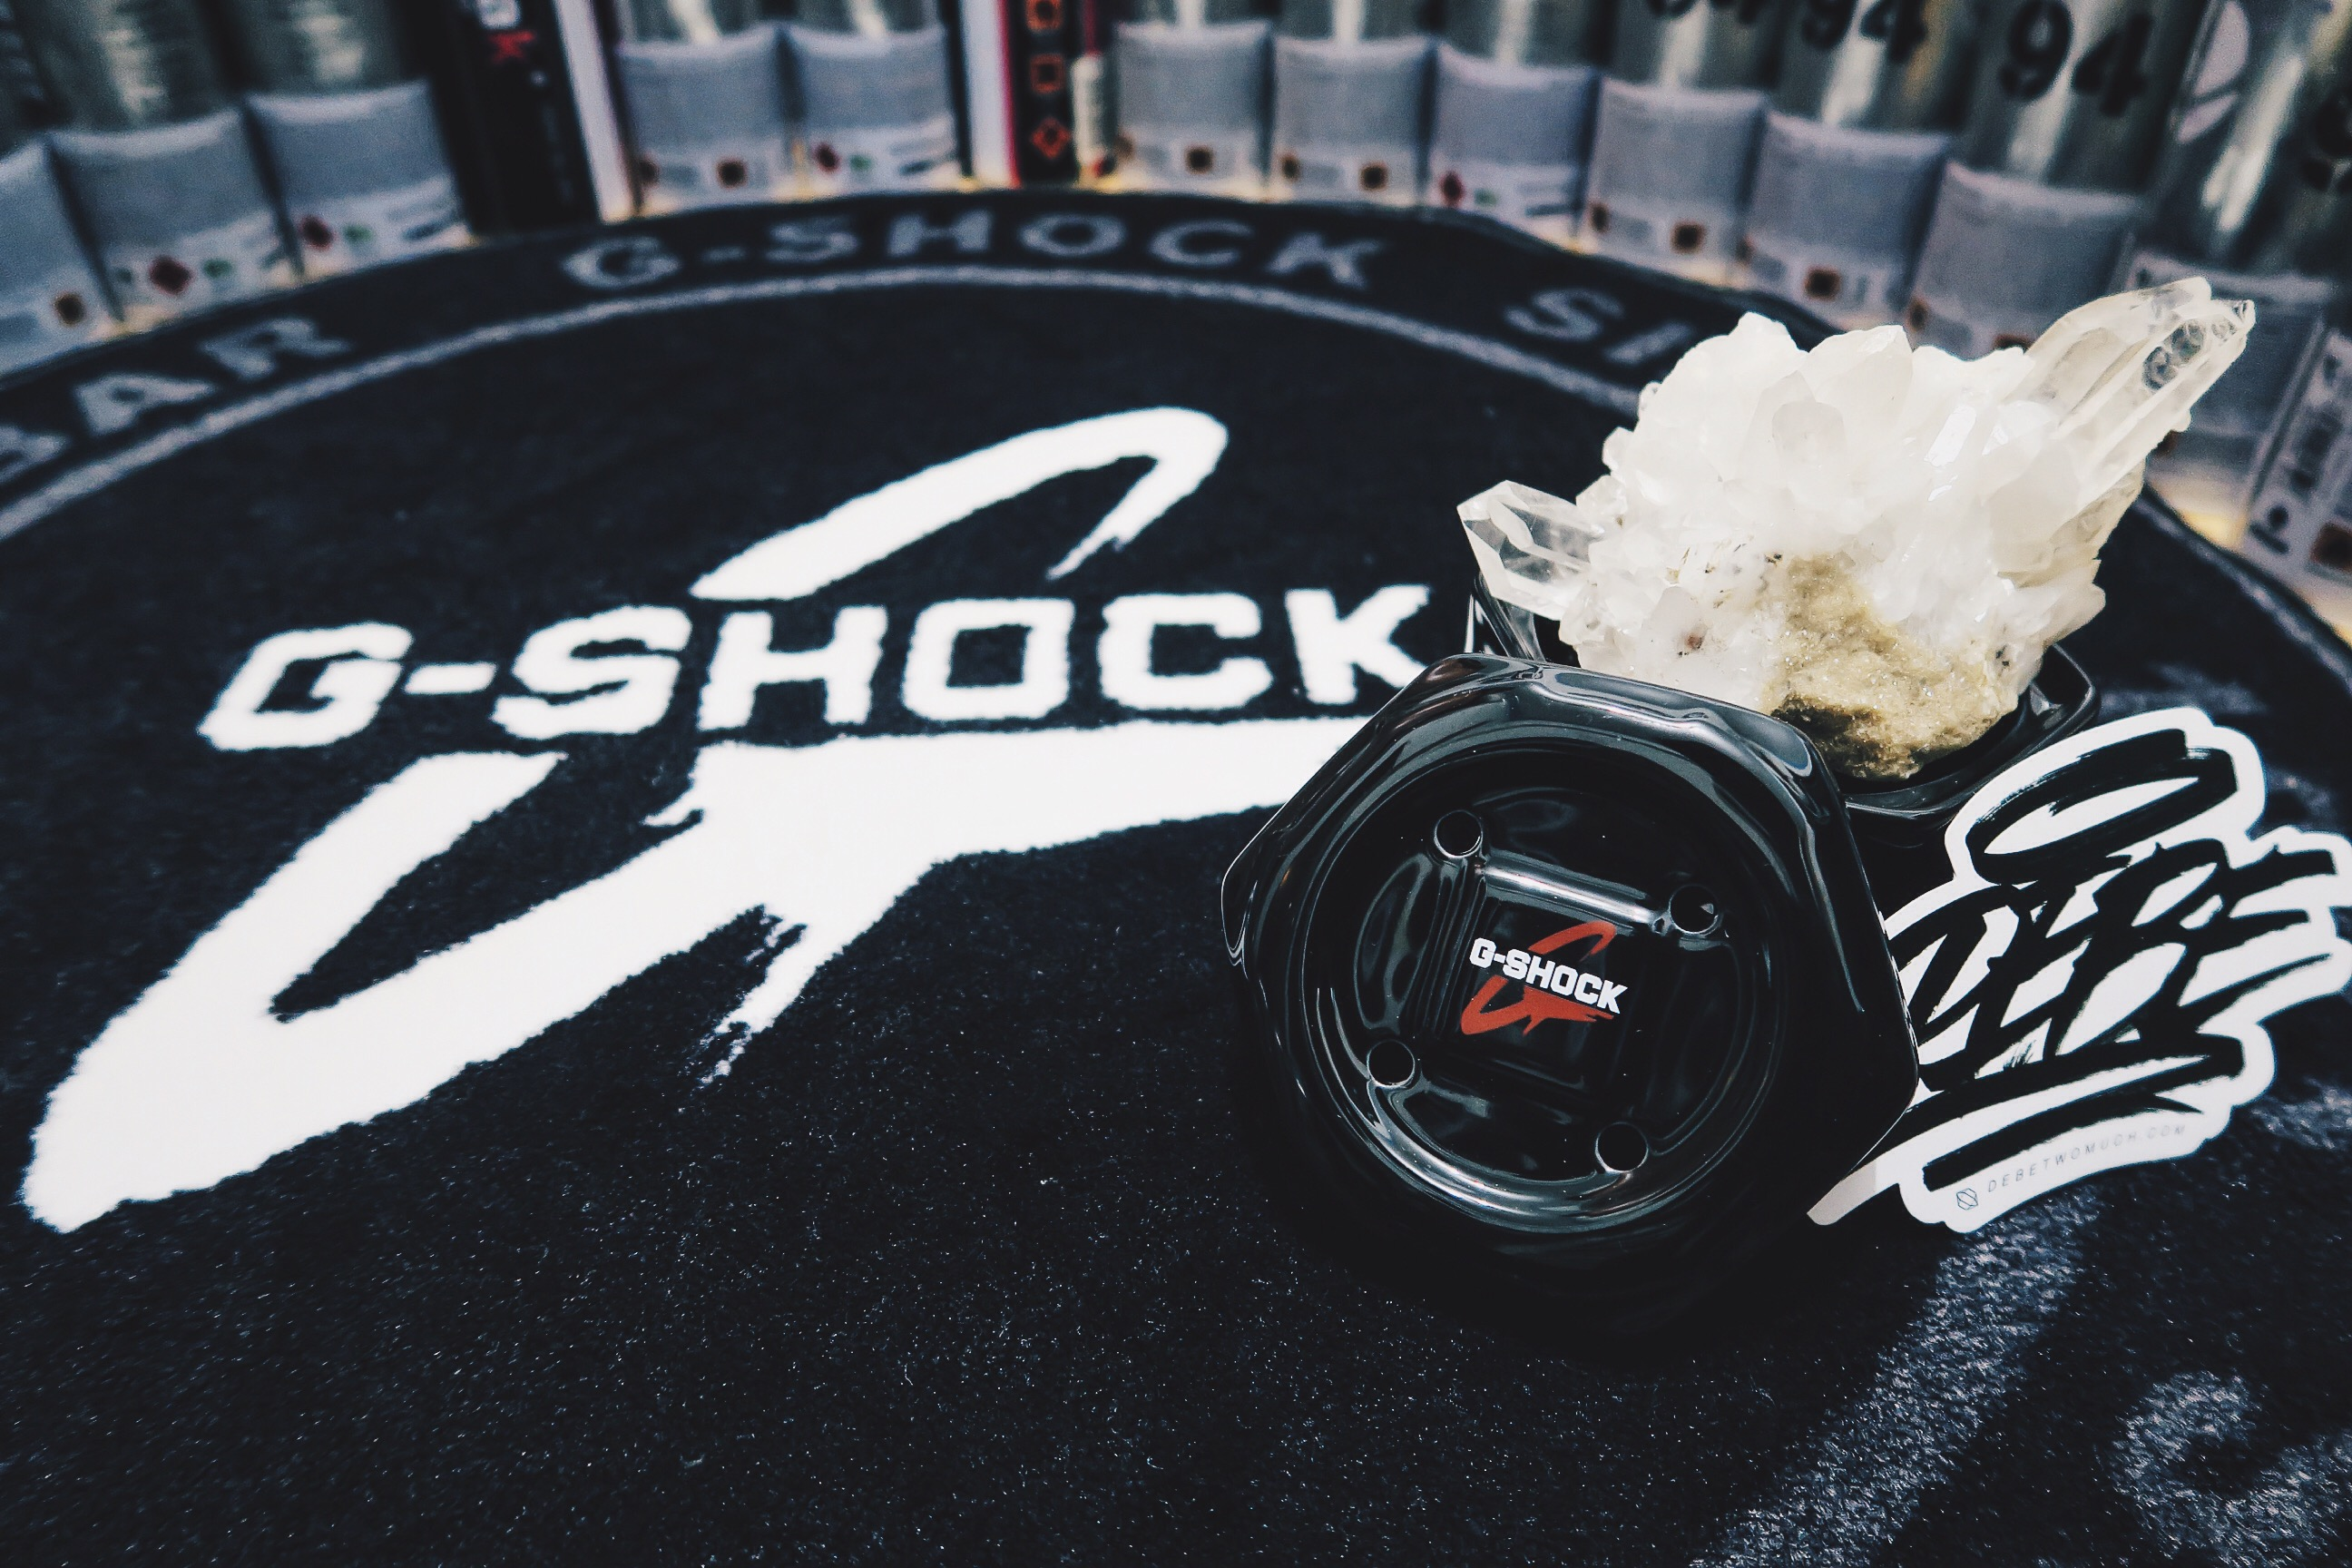 Big thanks for G-shock!